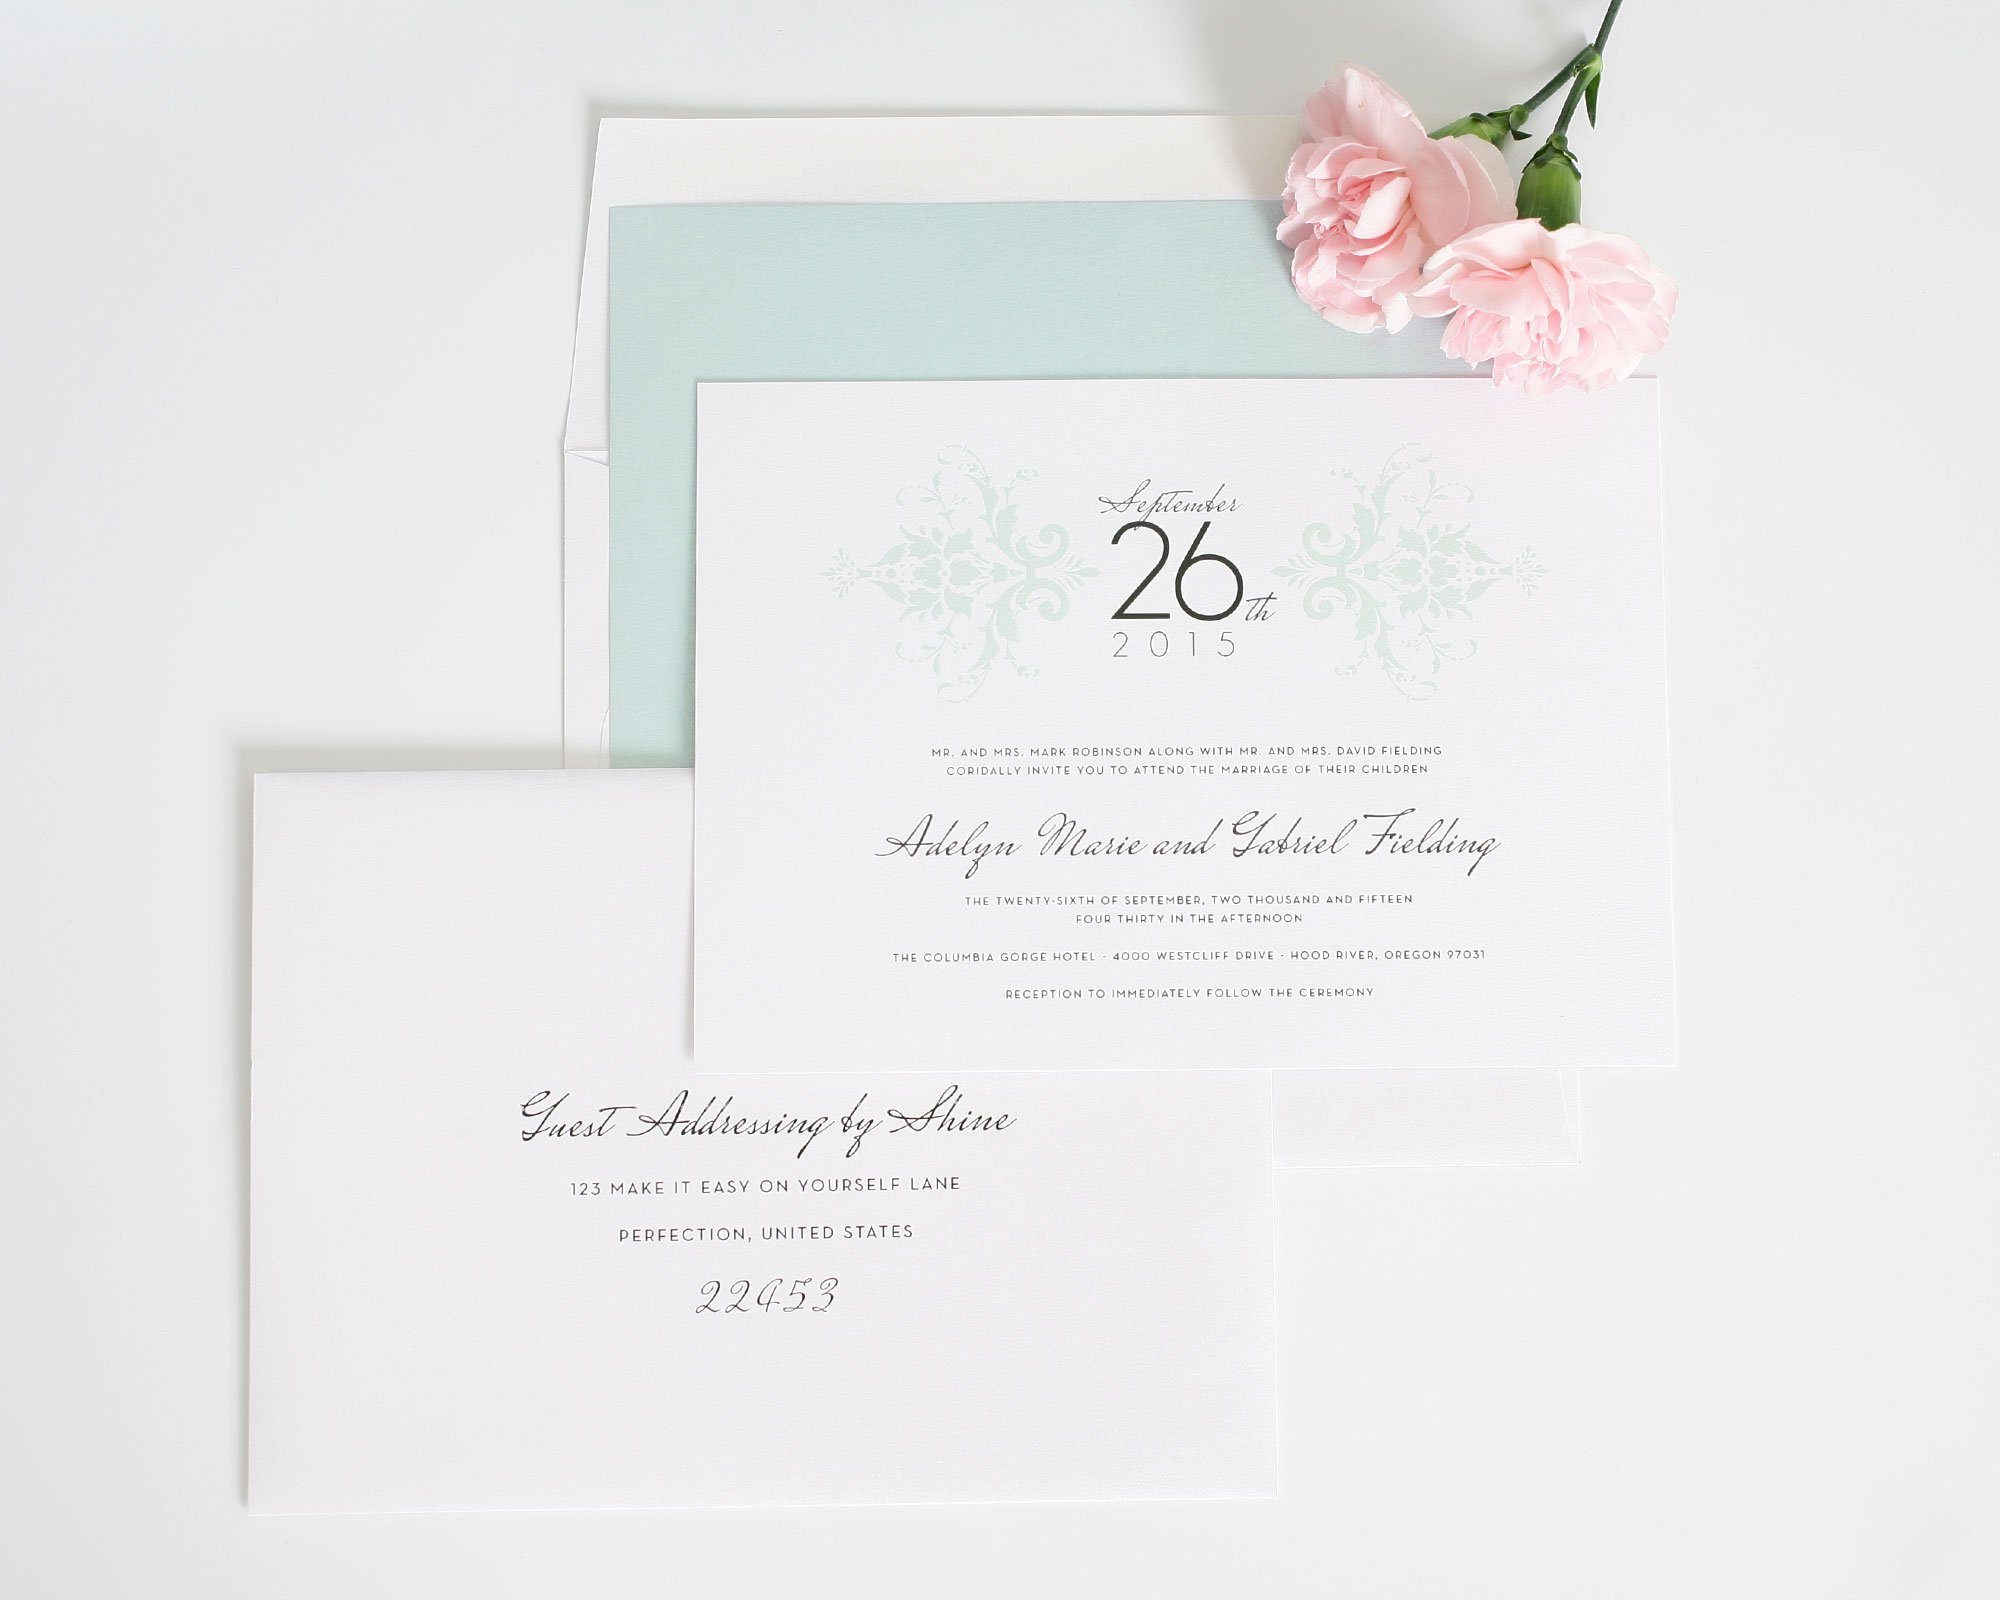 Elegant Damask Wedding Invitations in Mint – Wedding Invitations